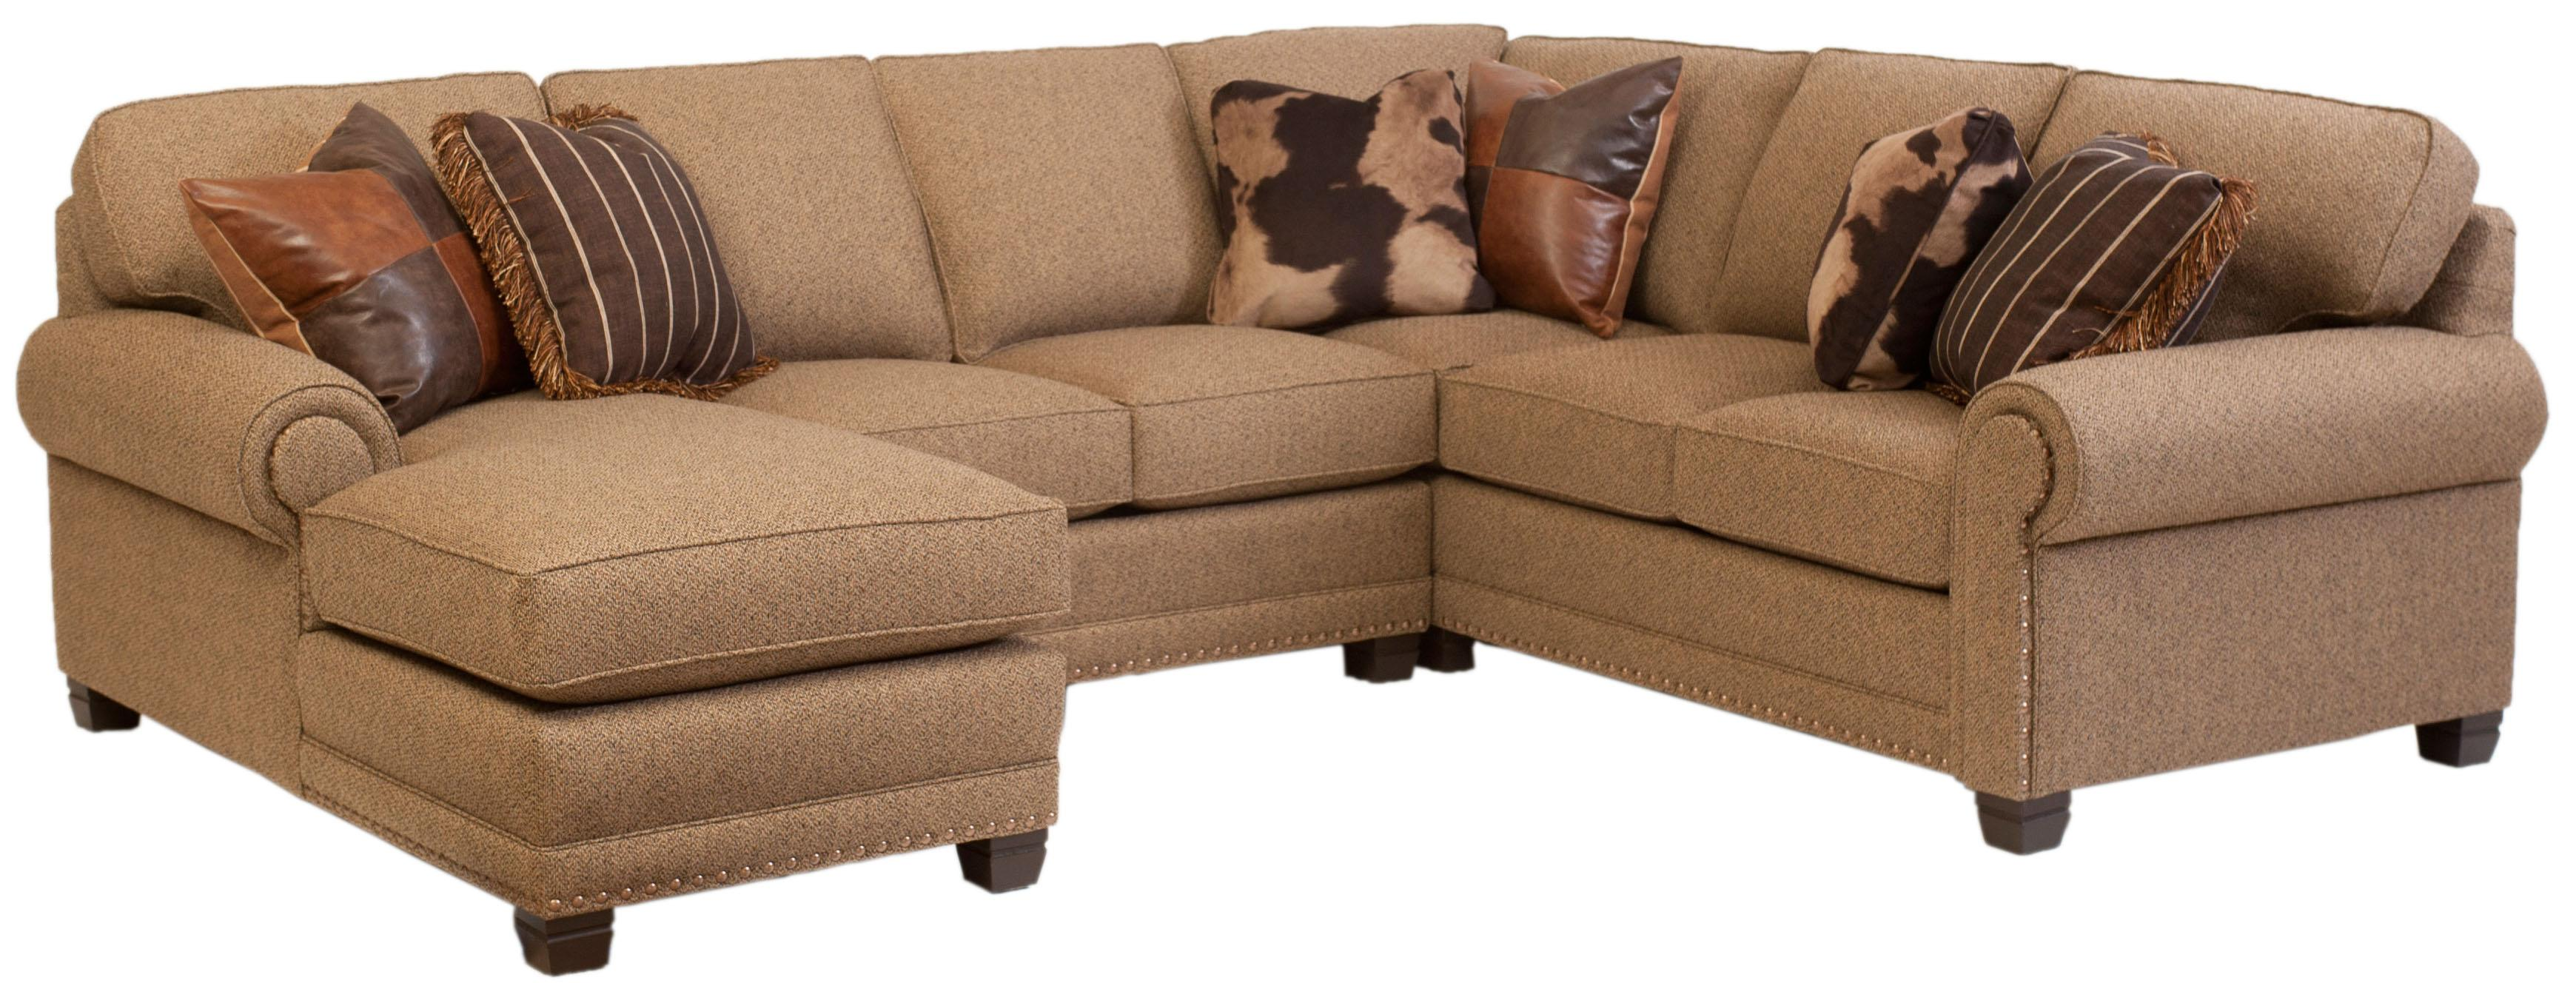 393 Sectional by Smith Brothers at Saugerties Furniture Mart